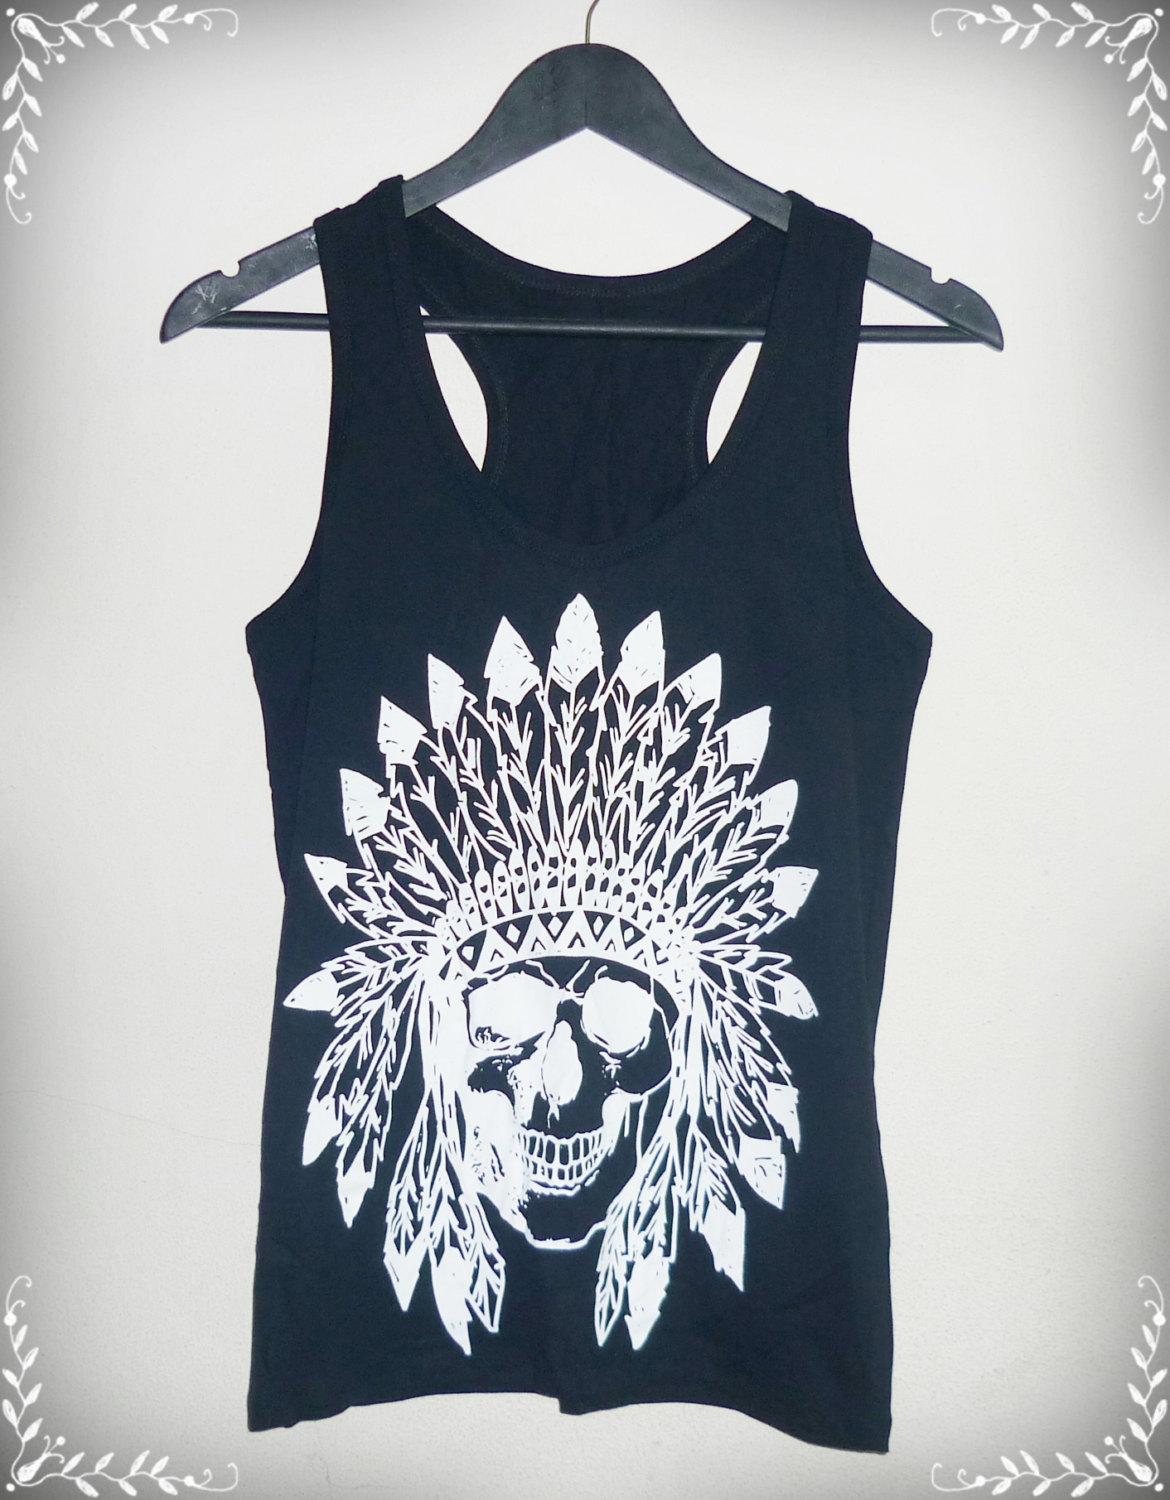 Tank top skull indian native american shirt men women vest s m l xl skull tank top black cotton shirt singlet sleeveless/ fashional clothing